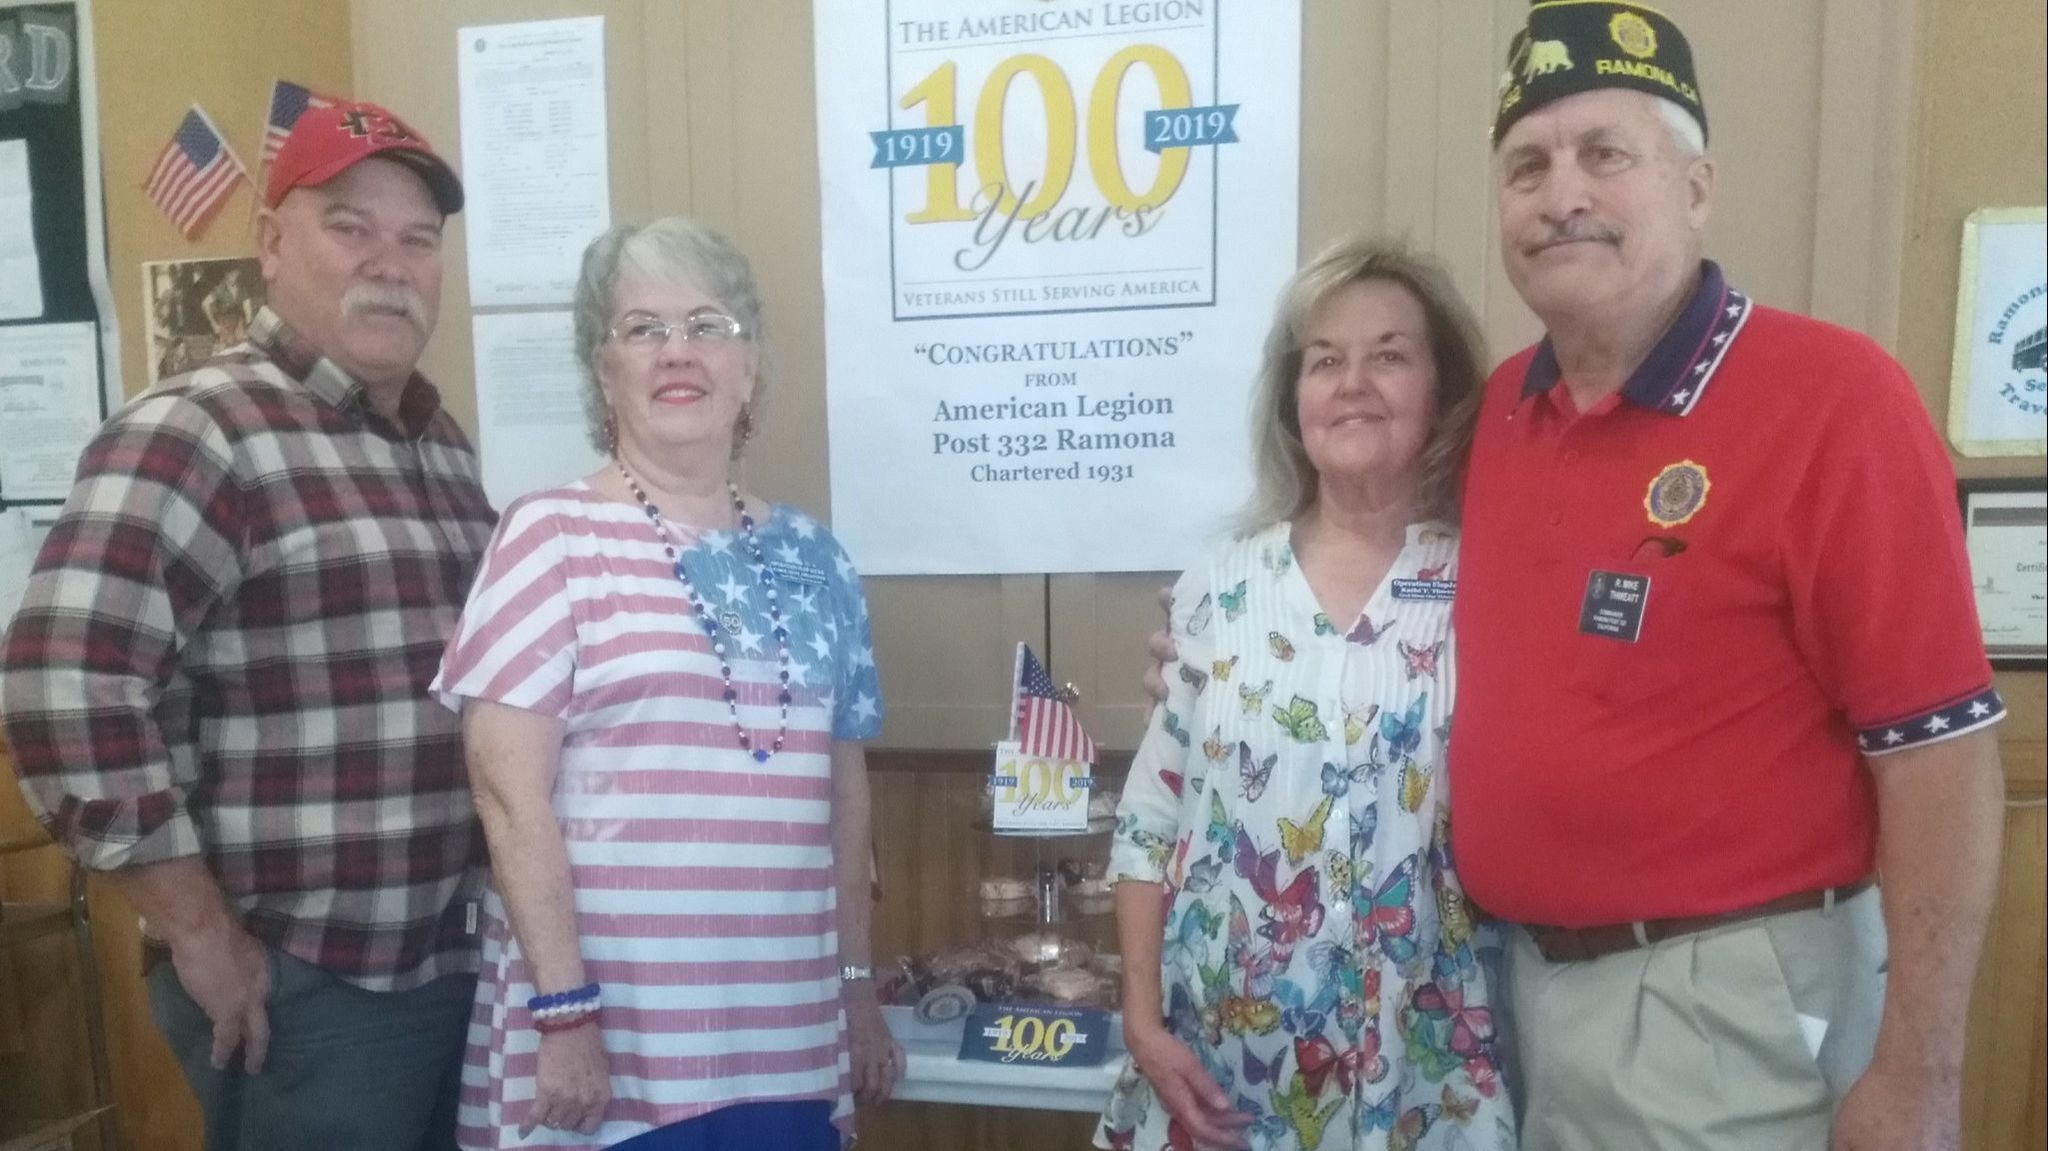 Organizers of a Fifth Annual Operation Flapjacks Veterans Appreciation Breakfast held in Ramona Community Center are, from left, Brad Stewart, Carol Huff, Kathi and Mike Thweatt.